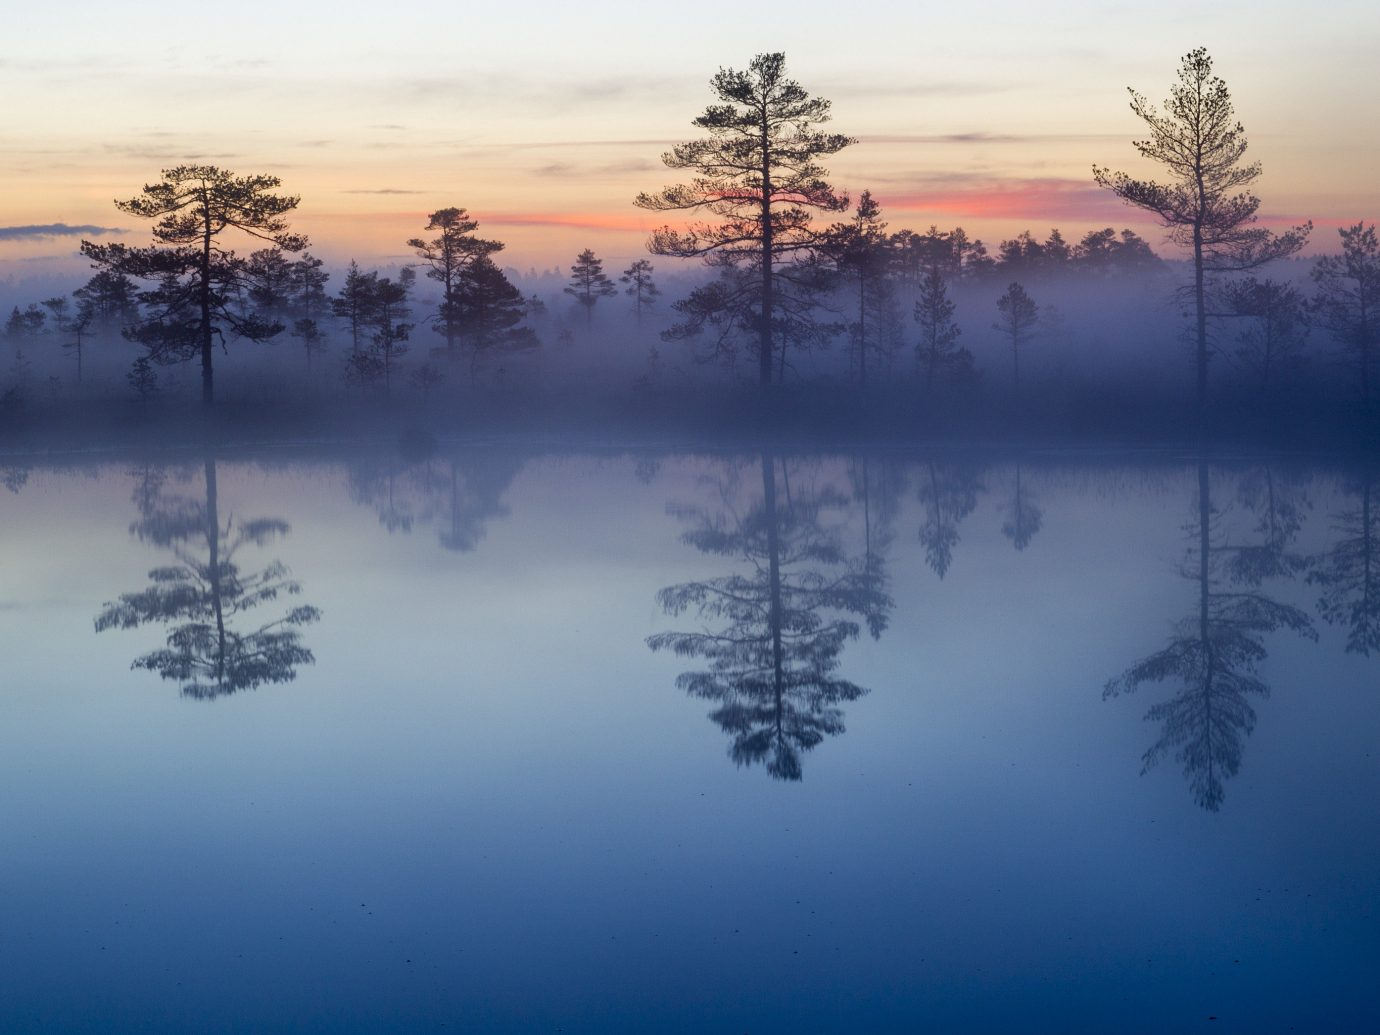 Hotels Offbeat Trip Ideas tree sky outdoor water Sunset reflection Nature atmospheric phenomenon Sun pond sunrise dawn mist weather atmosphere morning Lake Winter Fog cloud season evening dusk branch setting frost freezing sunlight clouds surrounded